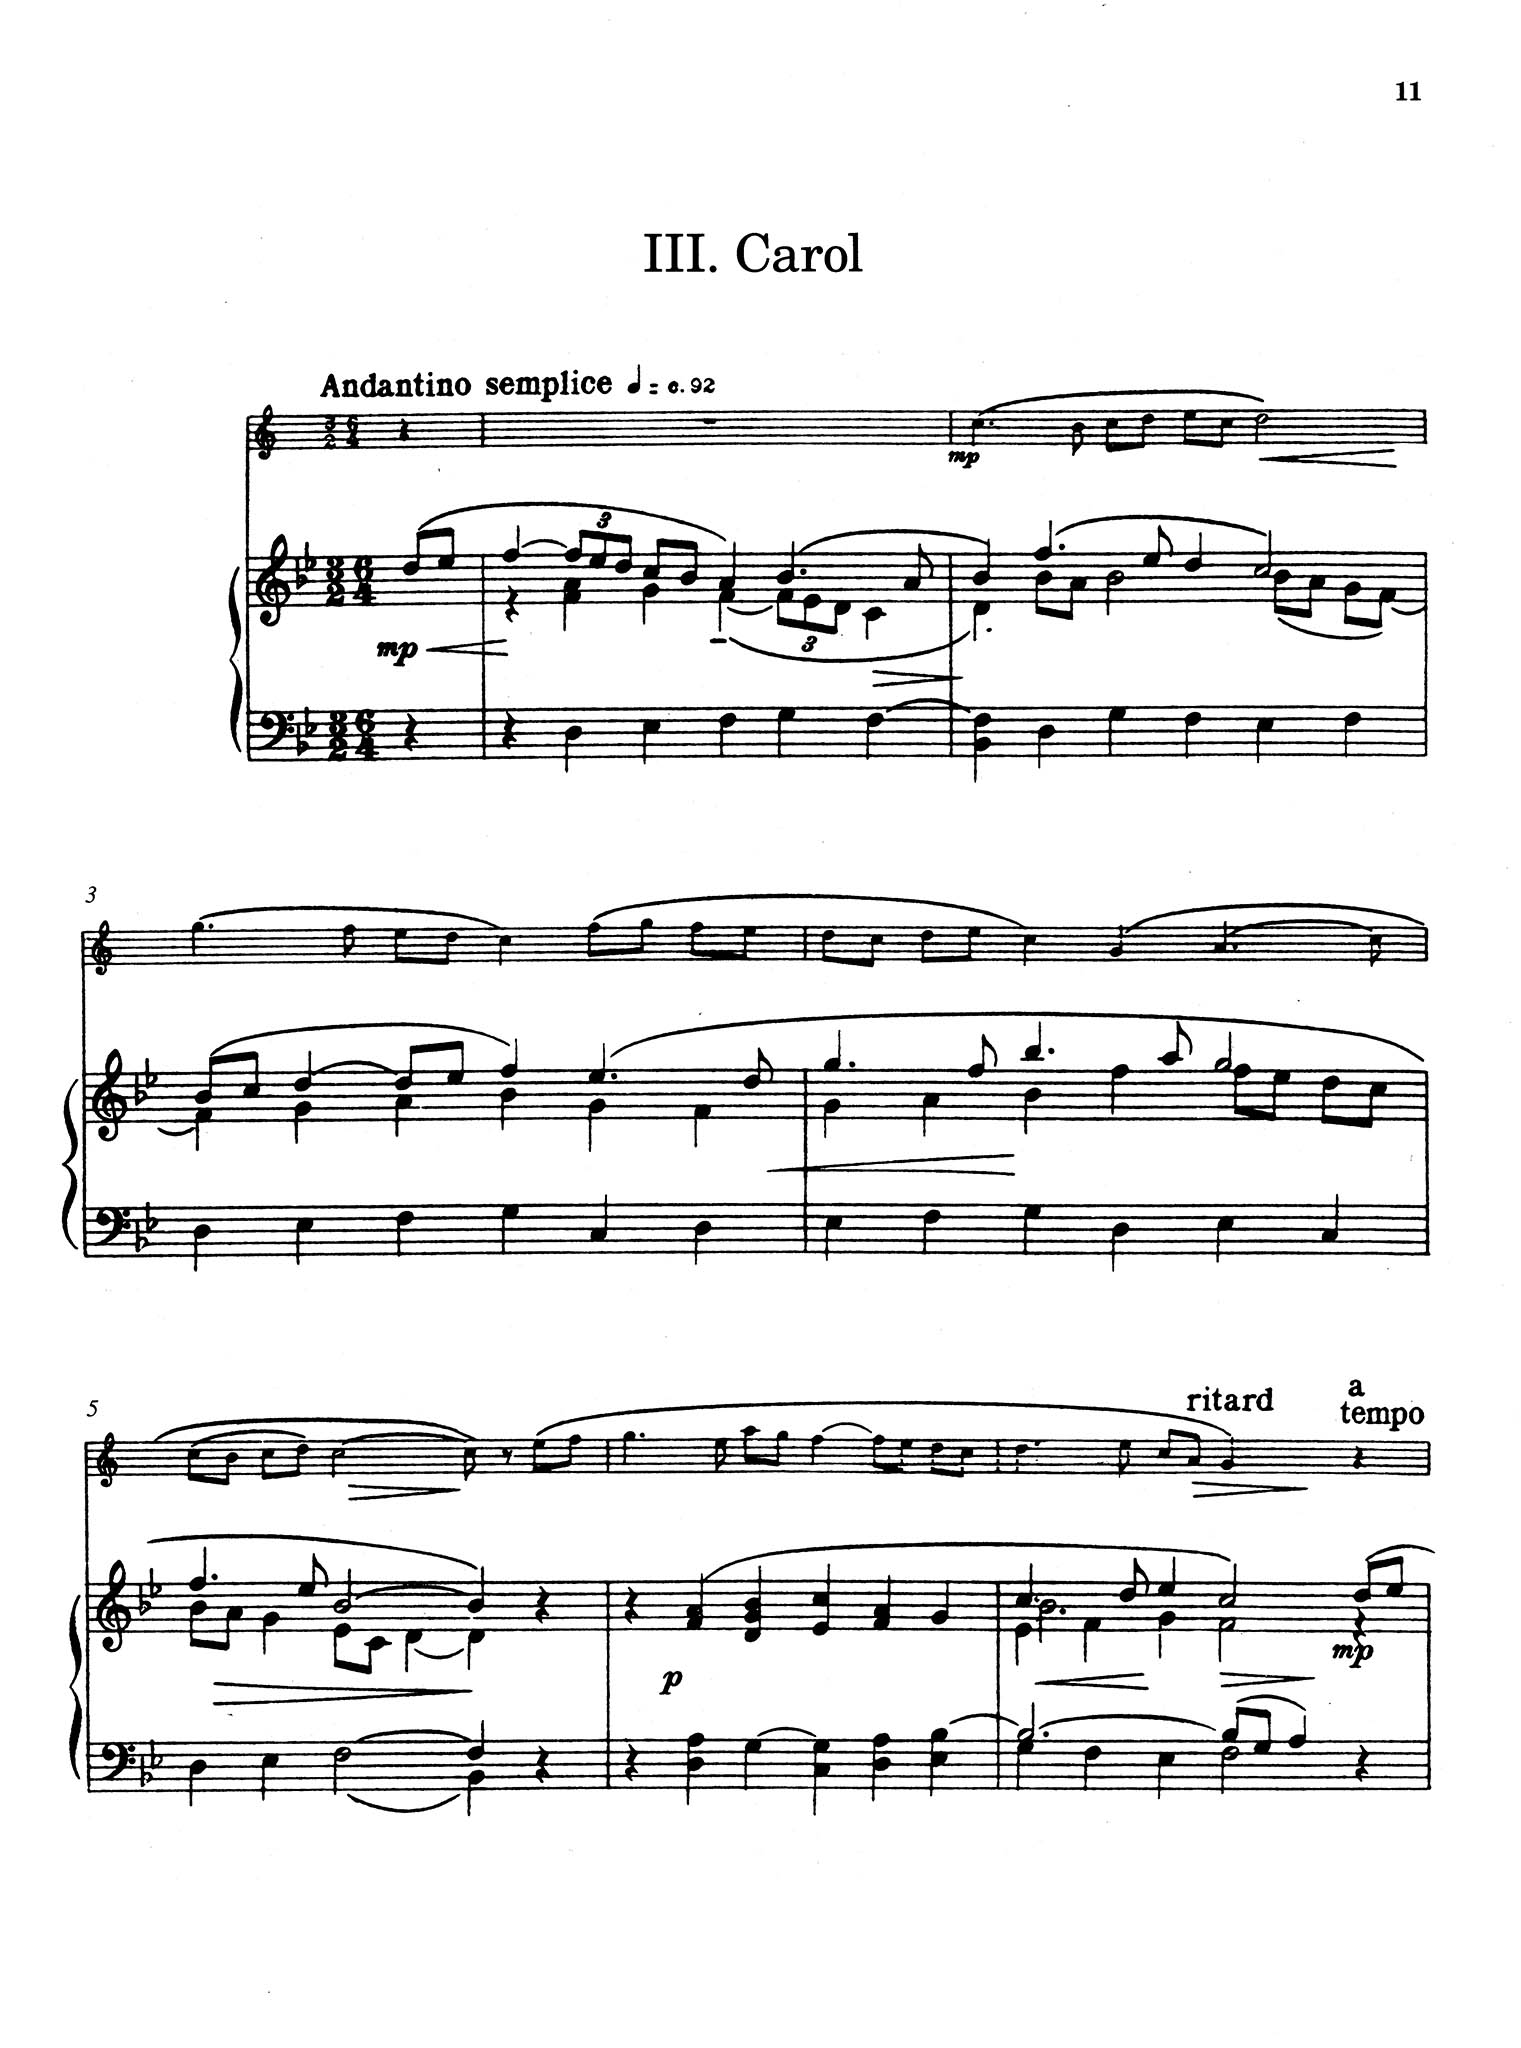 Five Bagatelles, Op. 23 - Movement 3